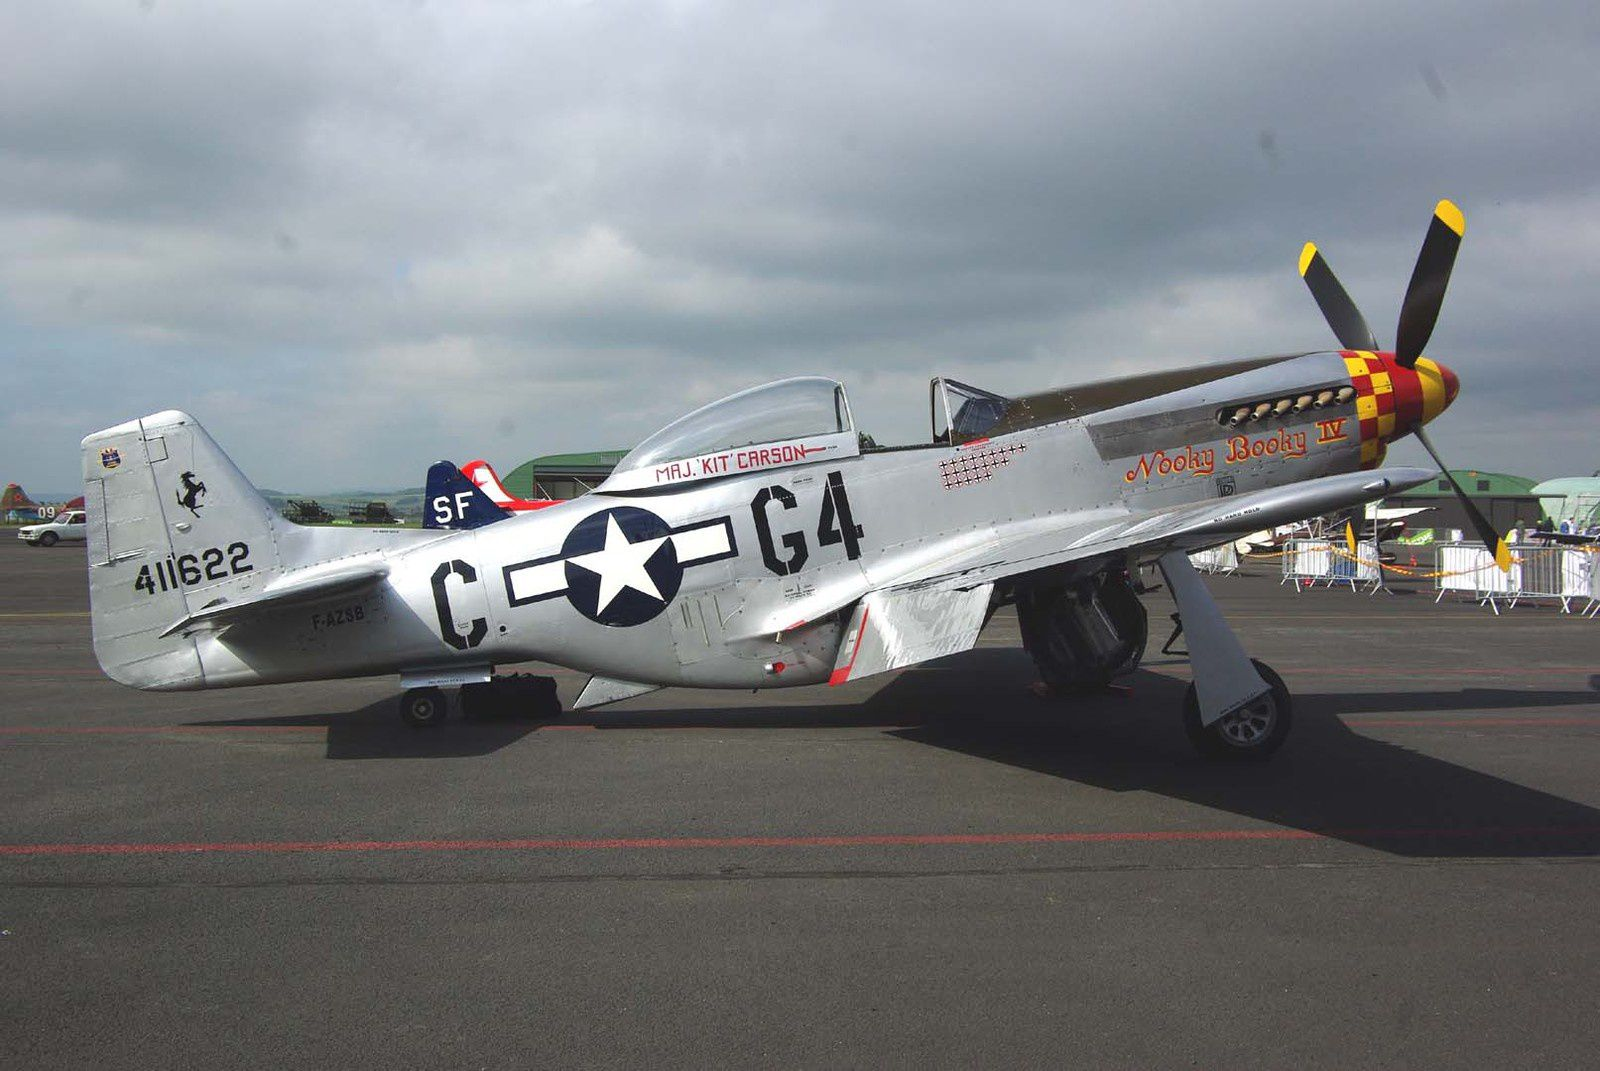 Le North American P-51D Mustang F-AZSB de France's Flying Warbirds.